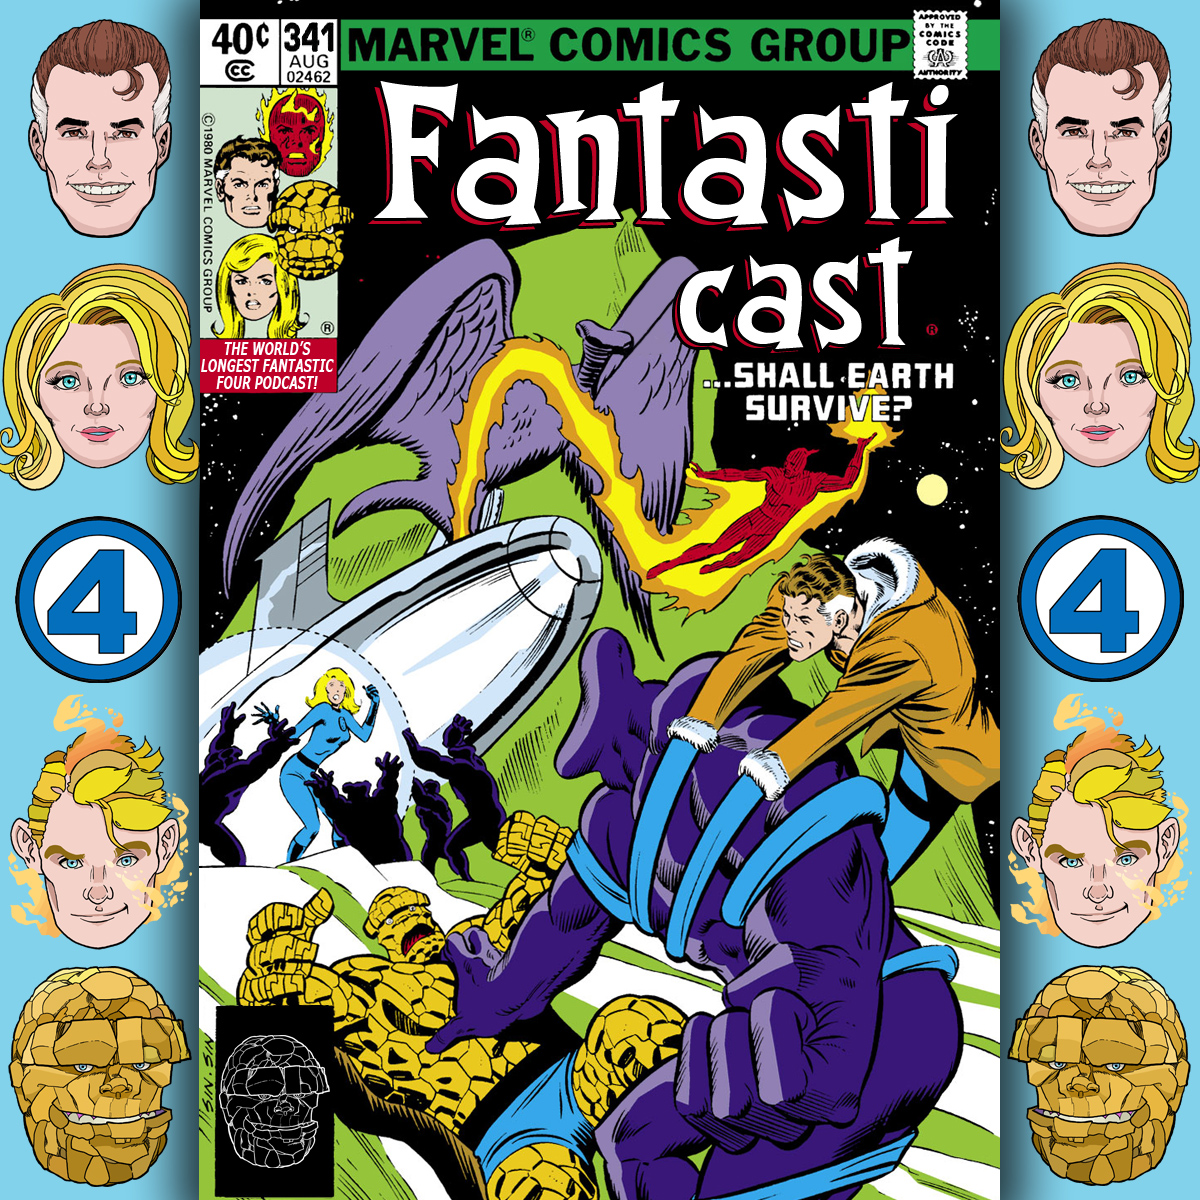 The Fantasticast Episode 341